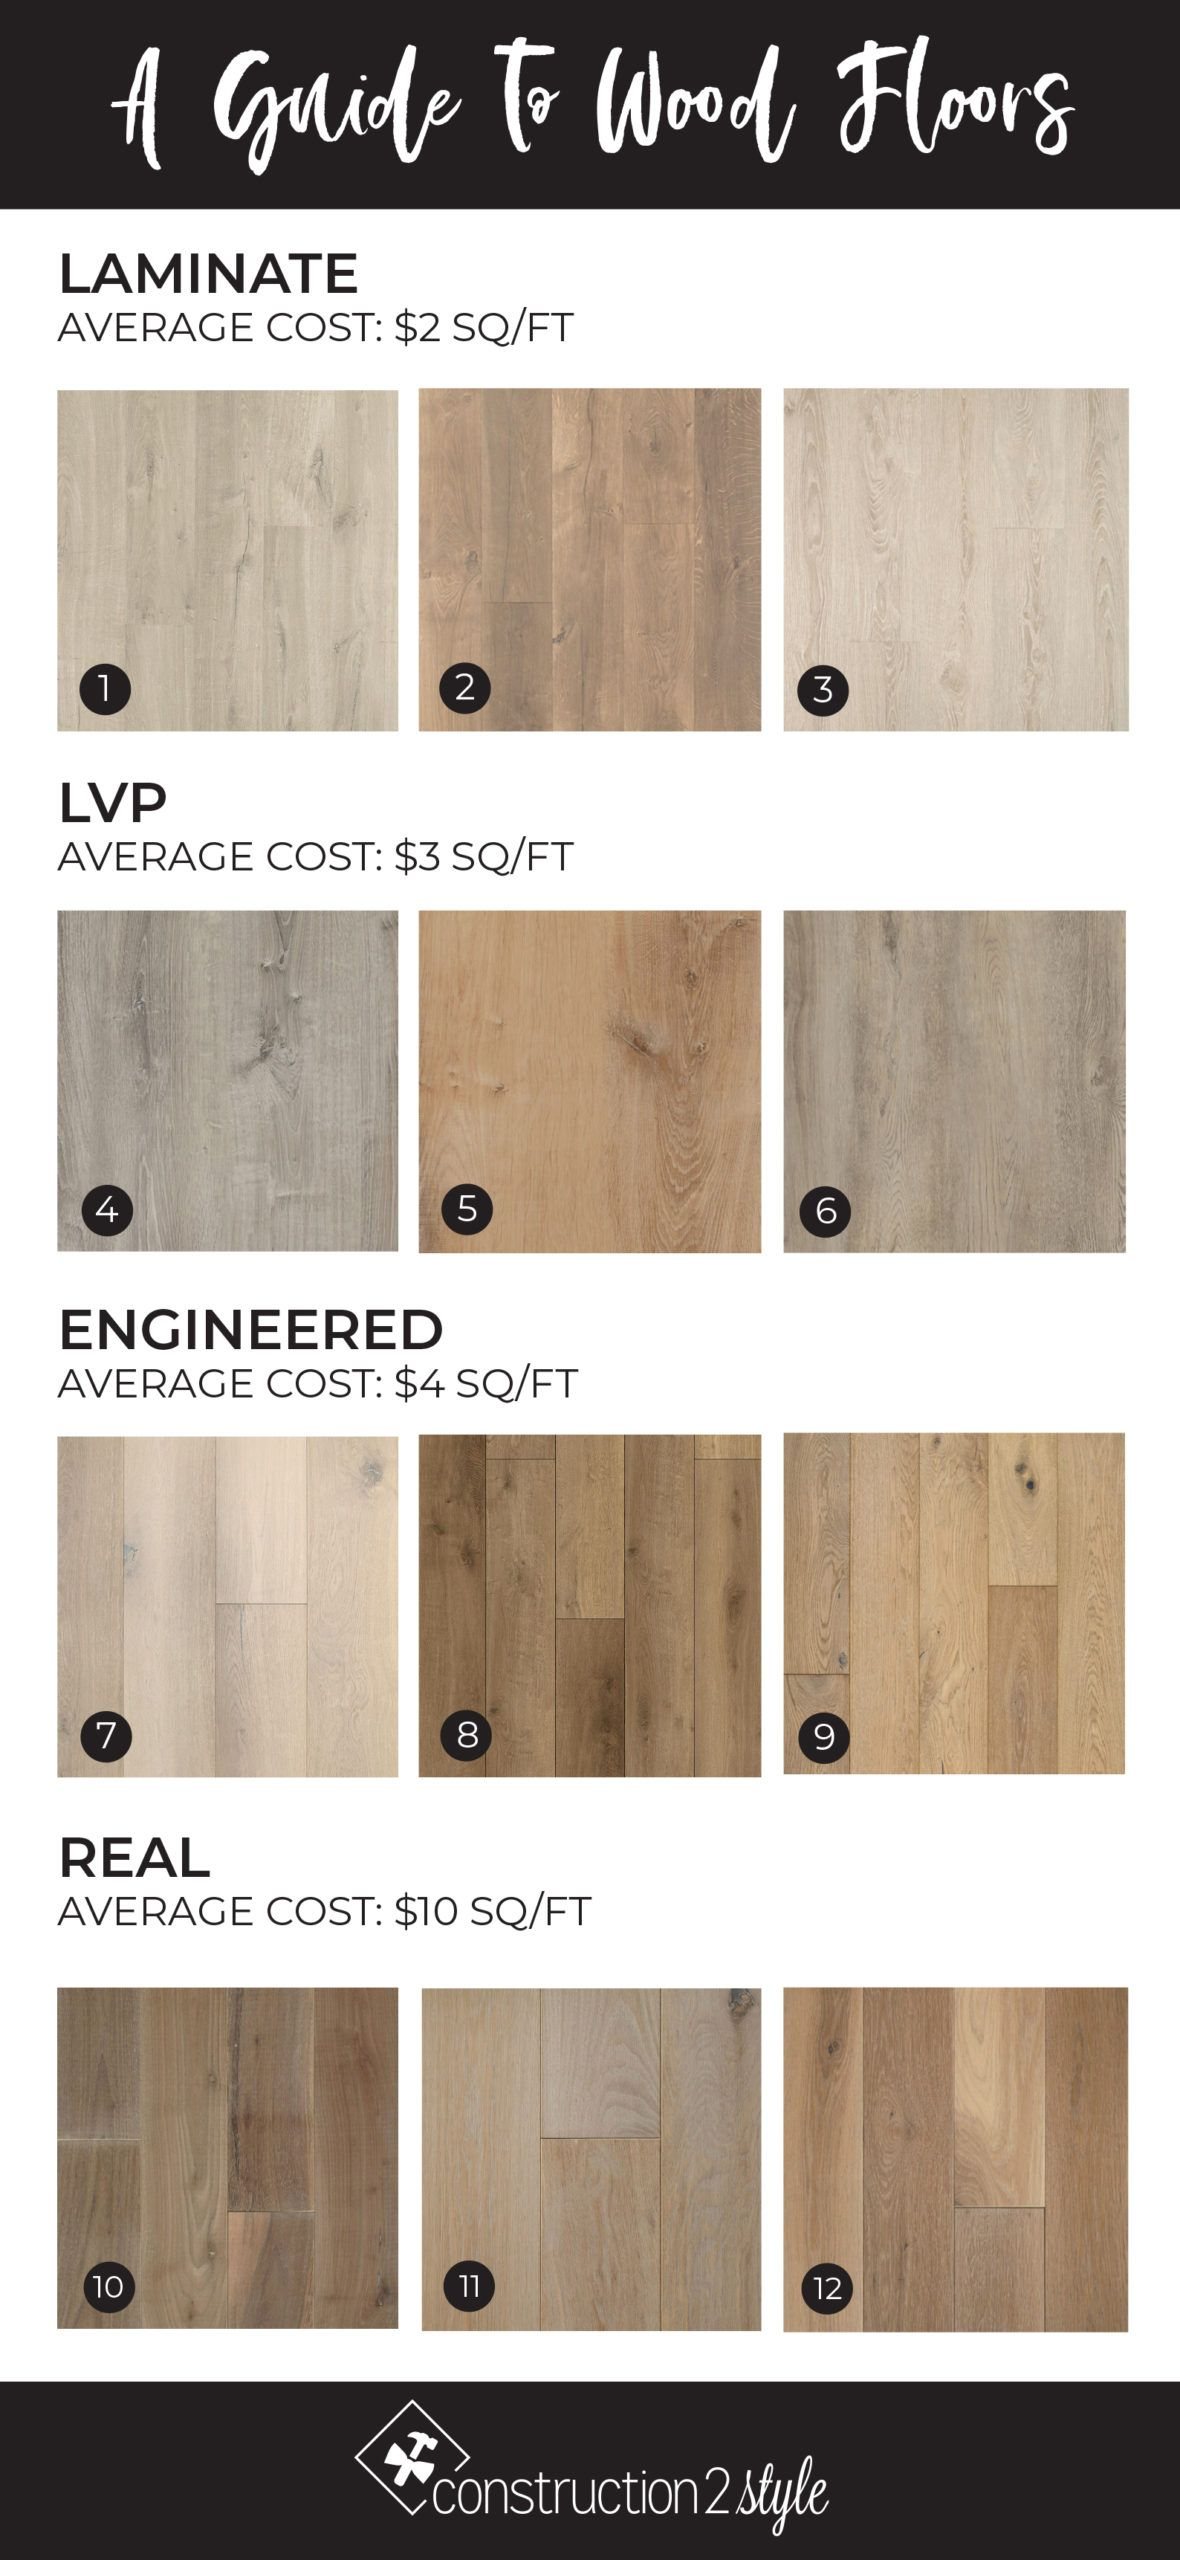 Best Light Wood Floors Pros Cons Of 5 Types In 2020 Light Wood Floors Vinyl Wood Flooring Light Oak Floors